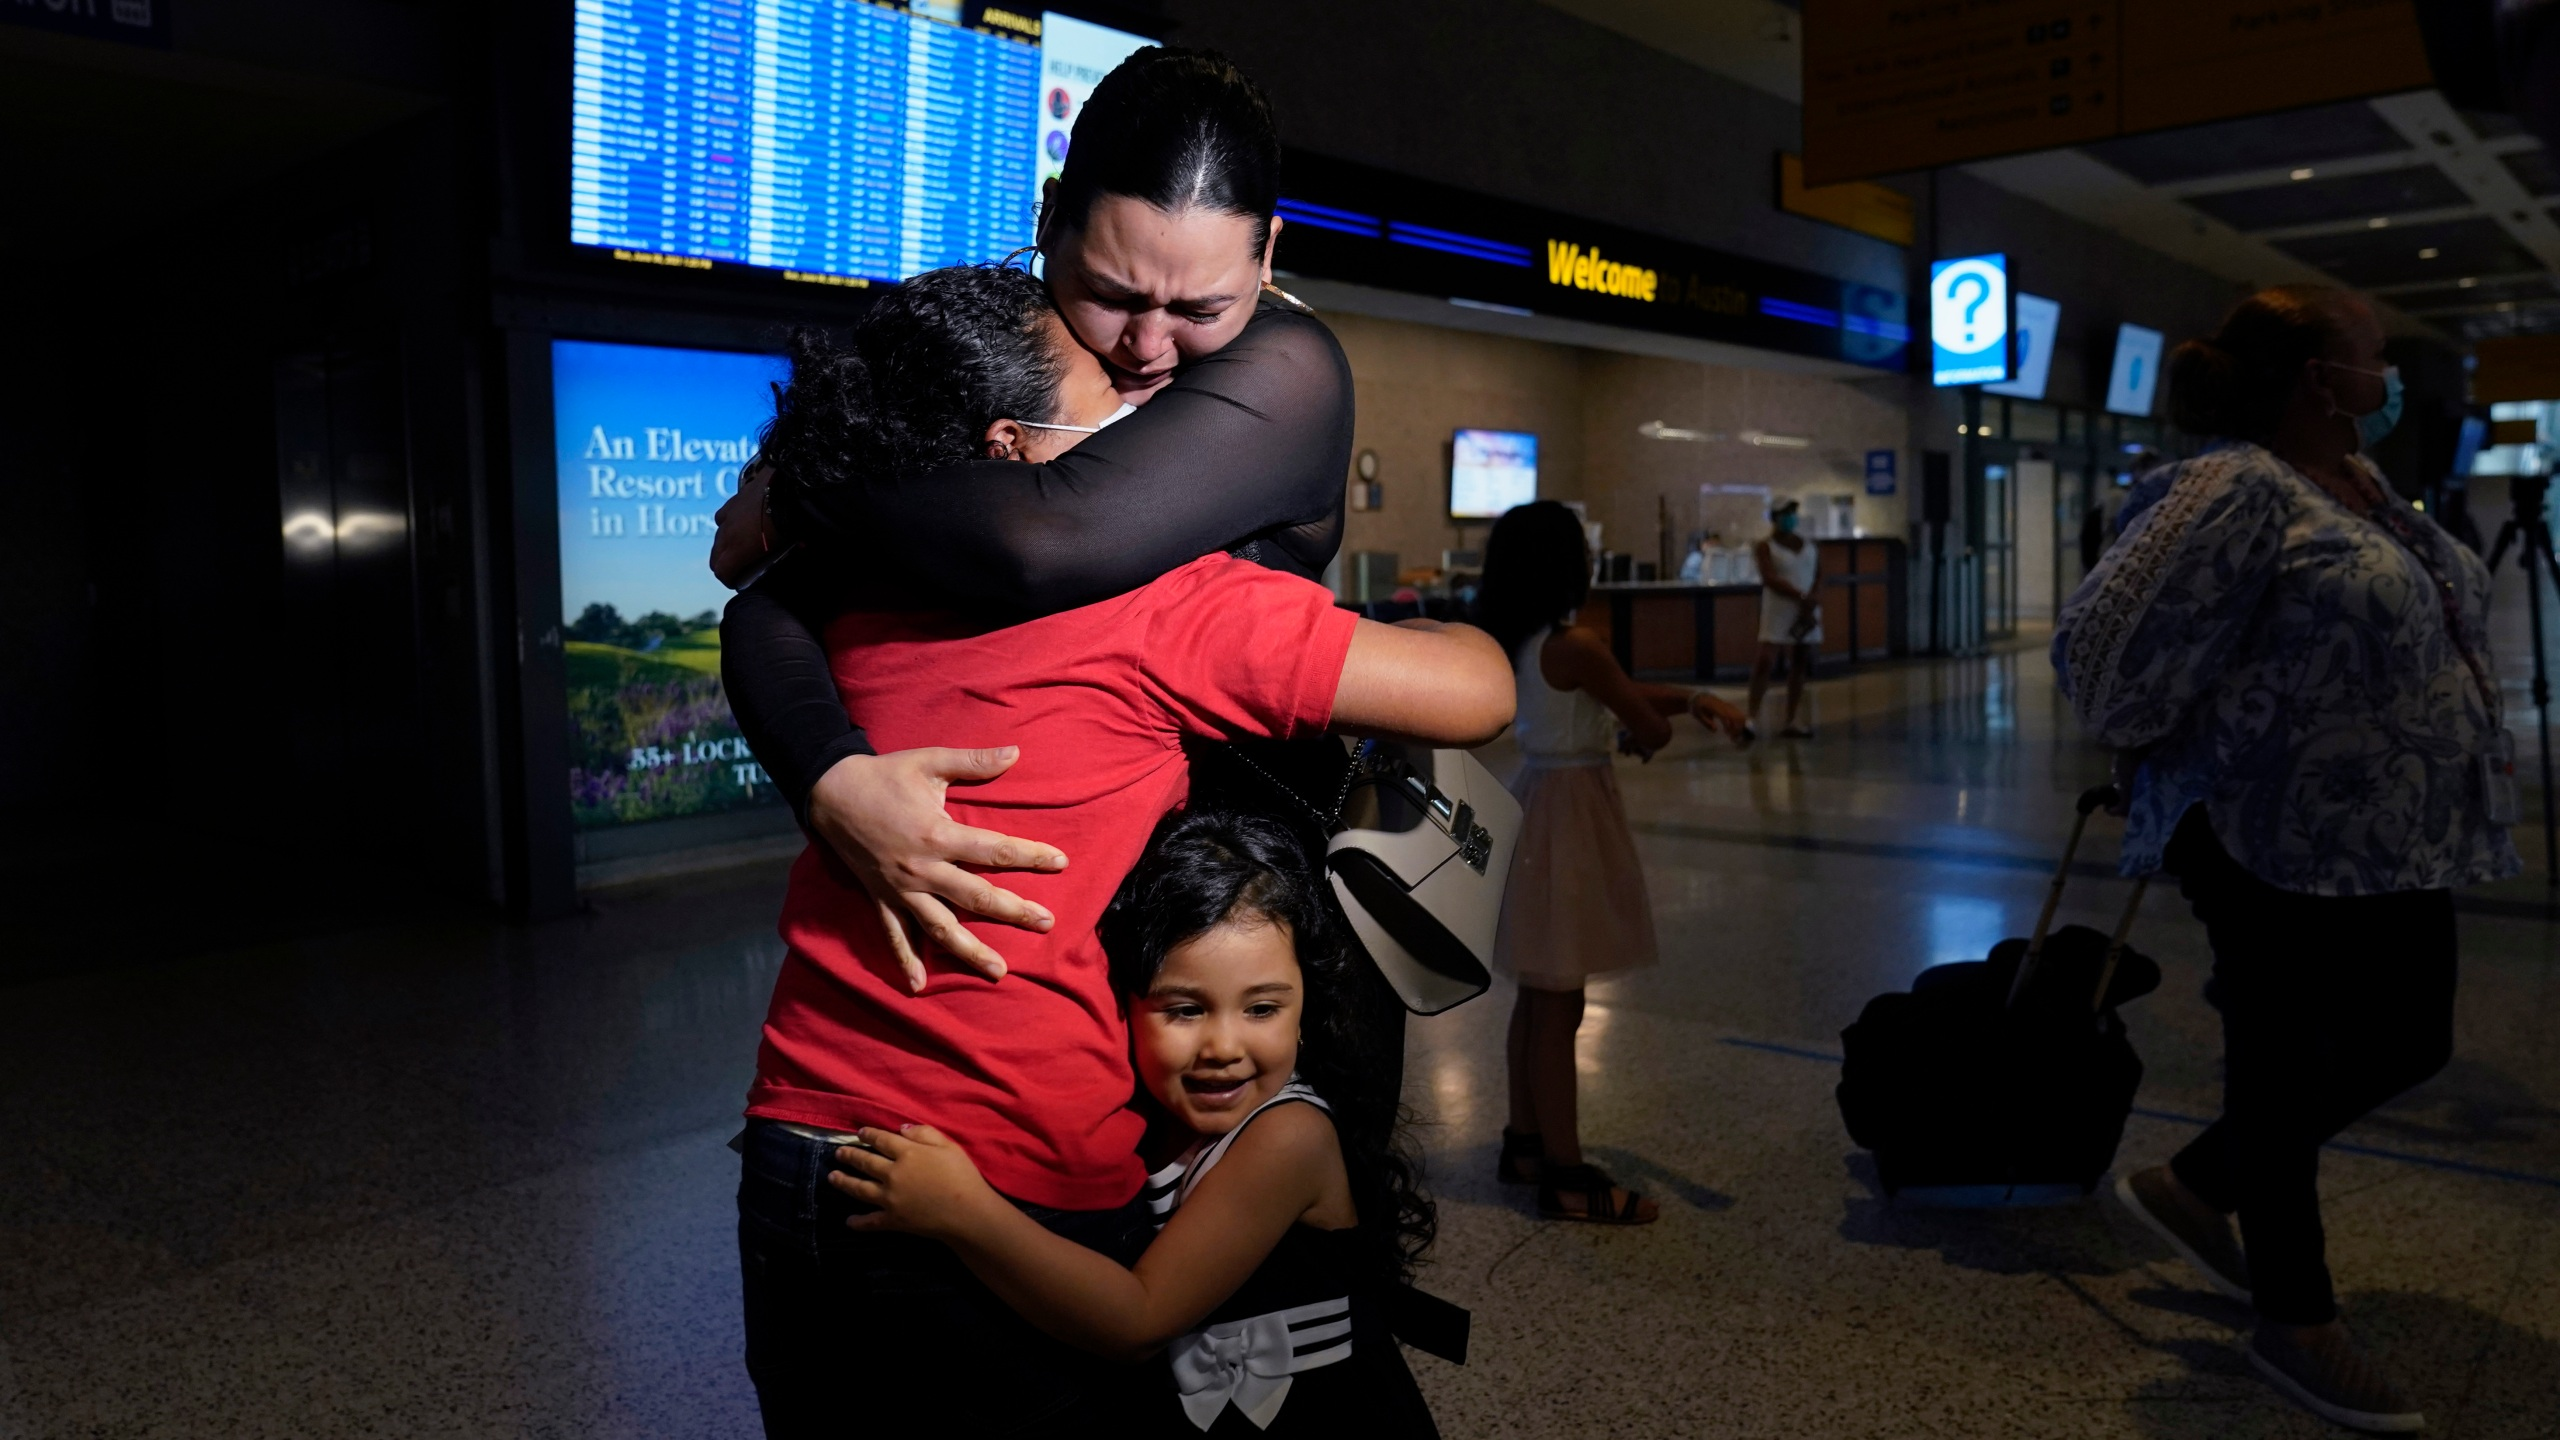 Emely, left, is reunited with her mother, Glenda Valdez and sister, Zuri, at Austin-Bergstrom International Airport, Sunday, June 6, 2021, in Austin, Texas. It had been six years since Valdez said goodbye to her daughter Emely in Honduras. Then, last month, she caught a glimpse of a televised Associated Press photo of a little girl in a red hoodie and knew that Emely had made the trip alone into the United States. On Sunday, the child was returned to her mother's custody. (AP Photo/Eric Gay)